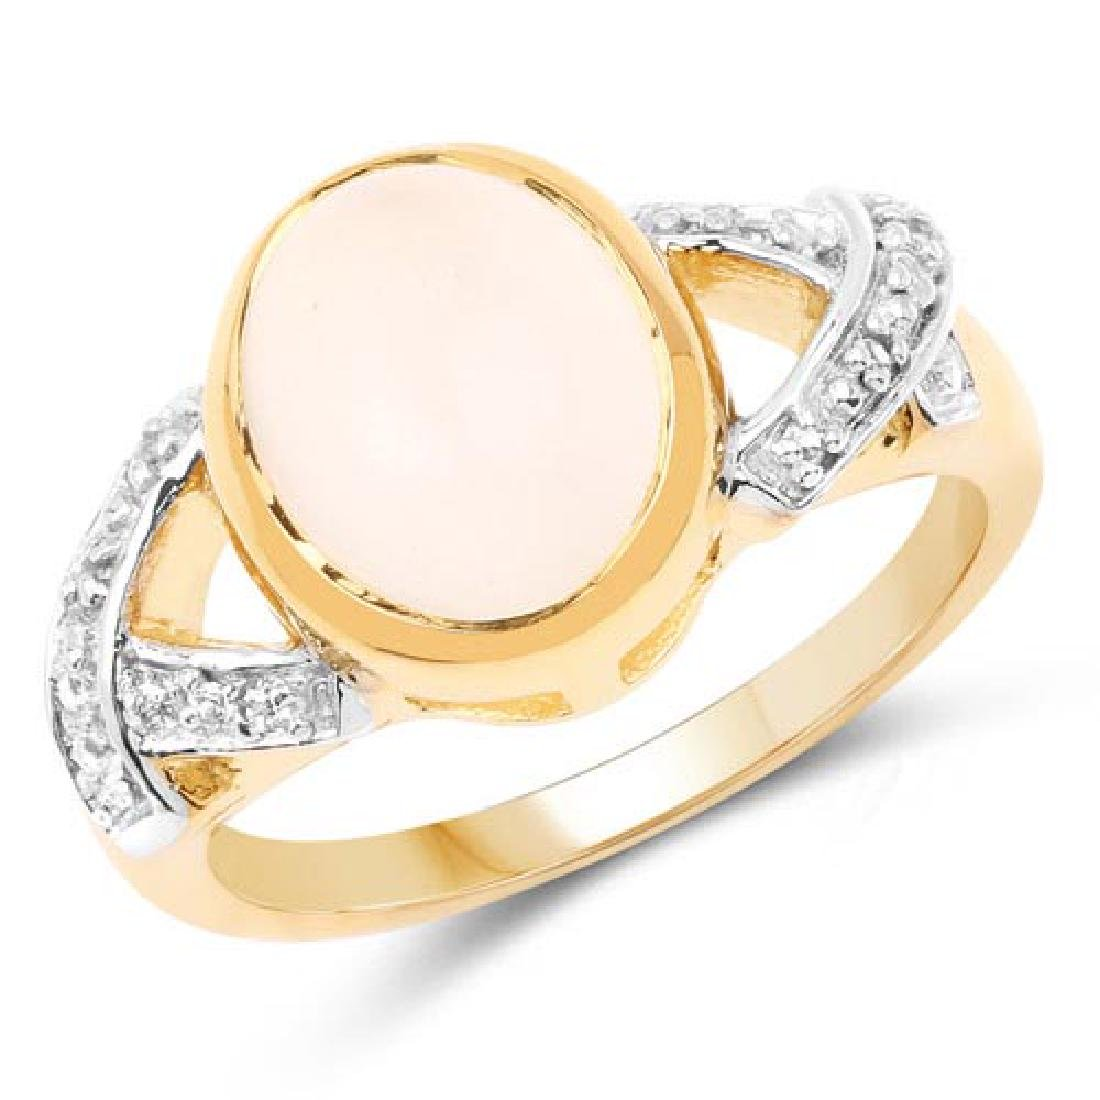 14K Yellow Gold Plated 3.06 Carat Genuine Moonstone and